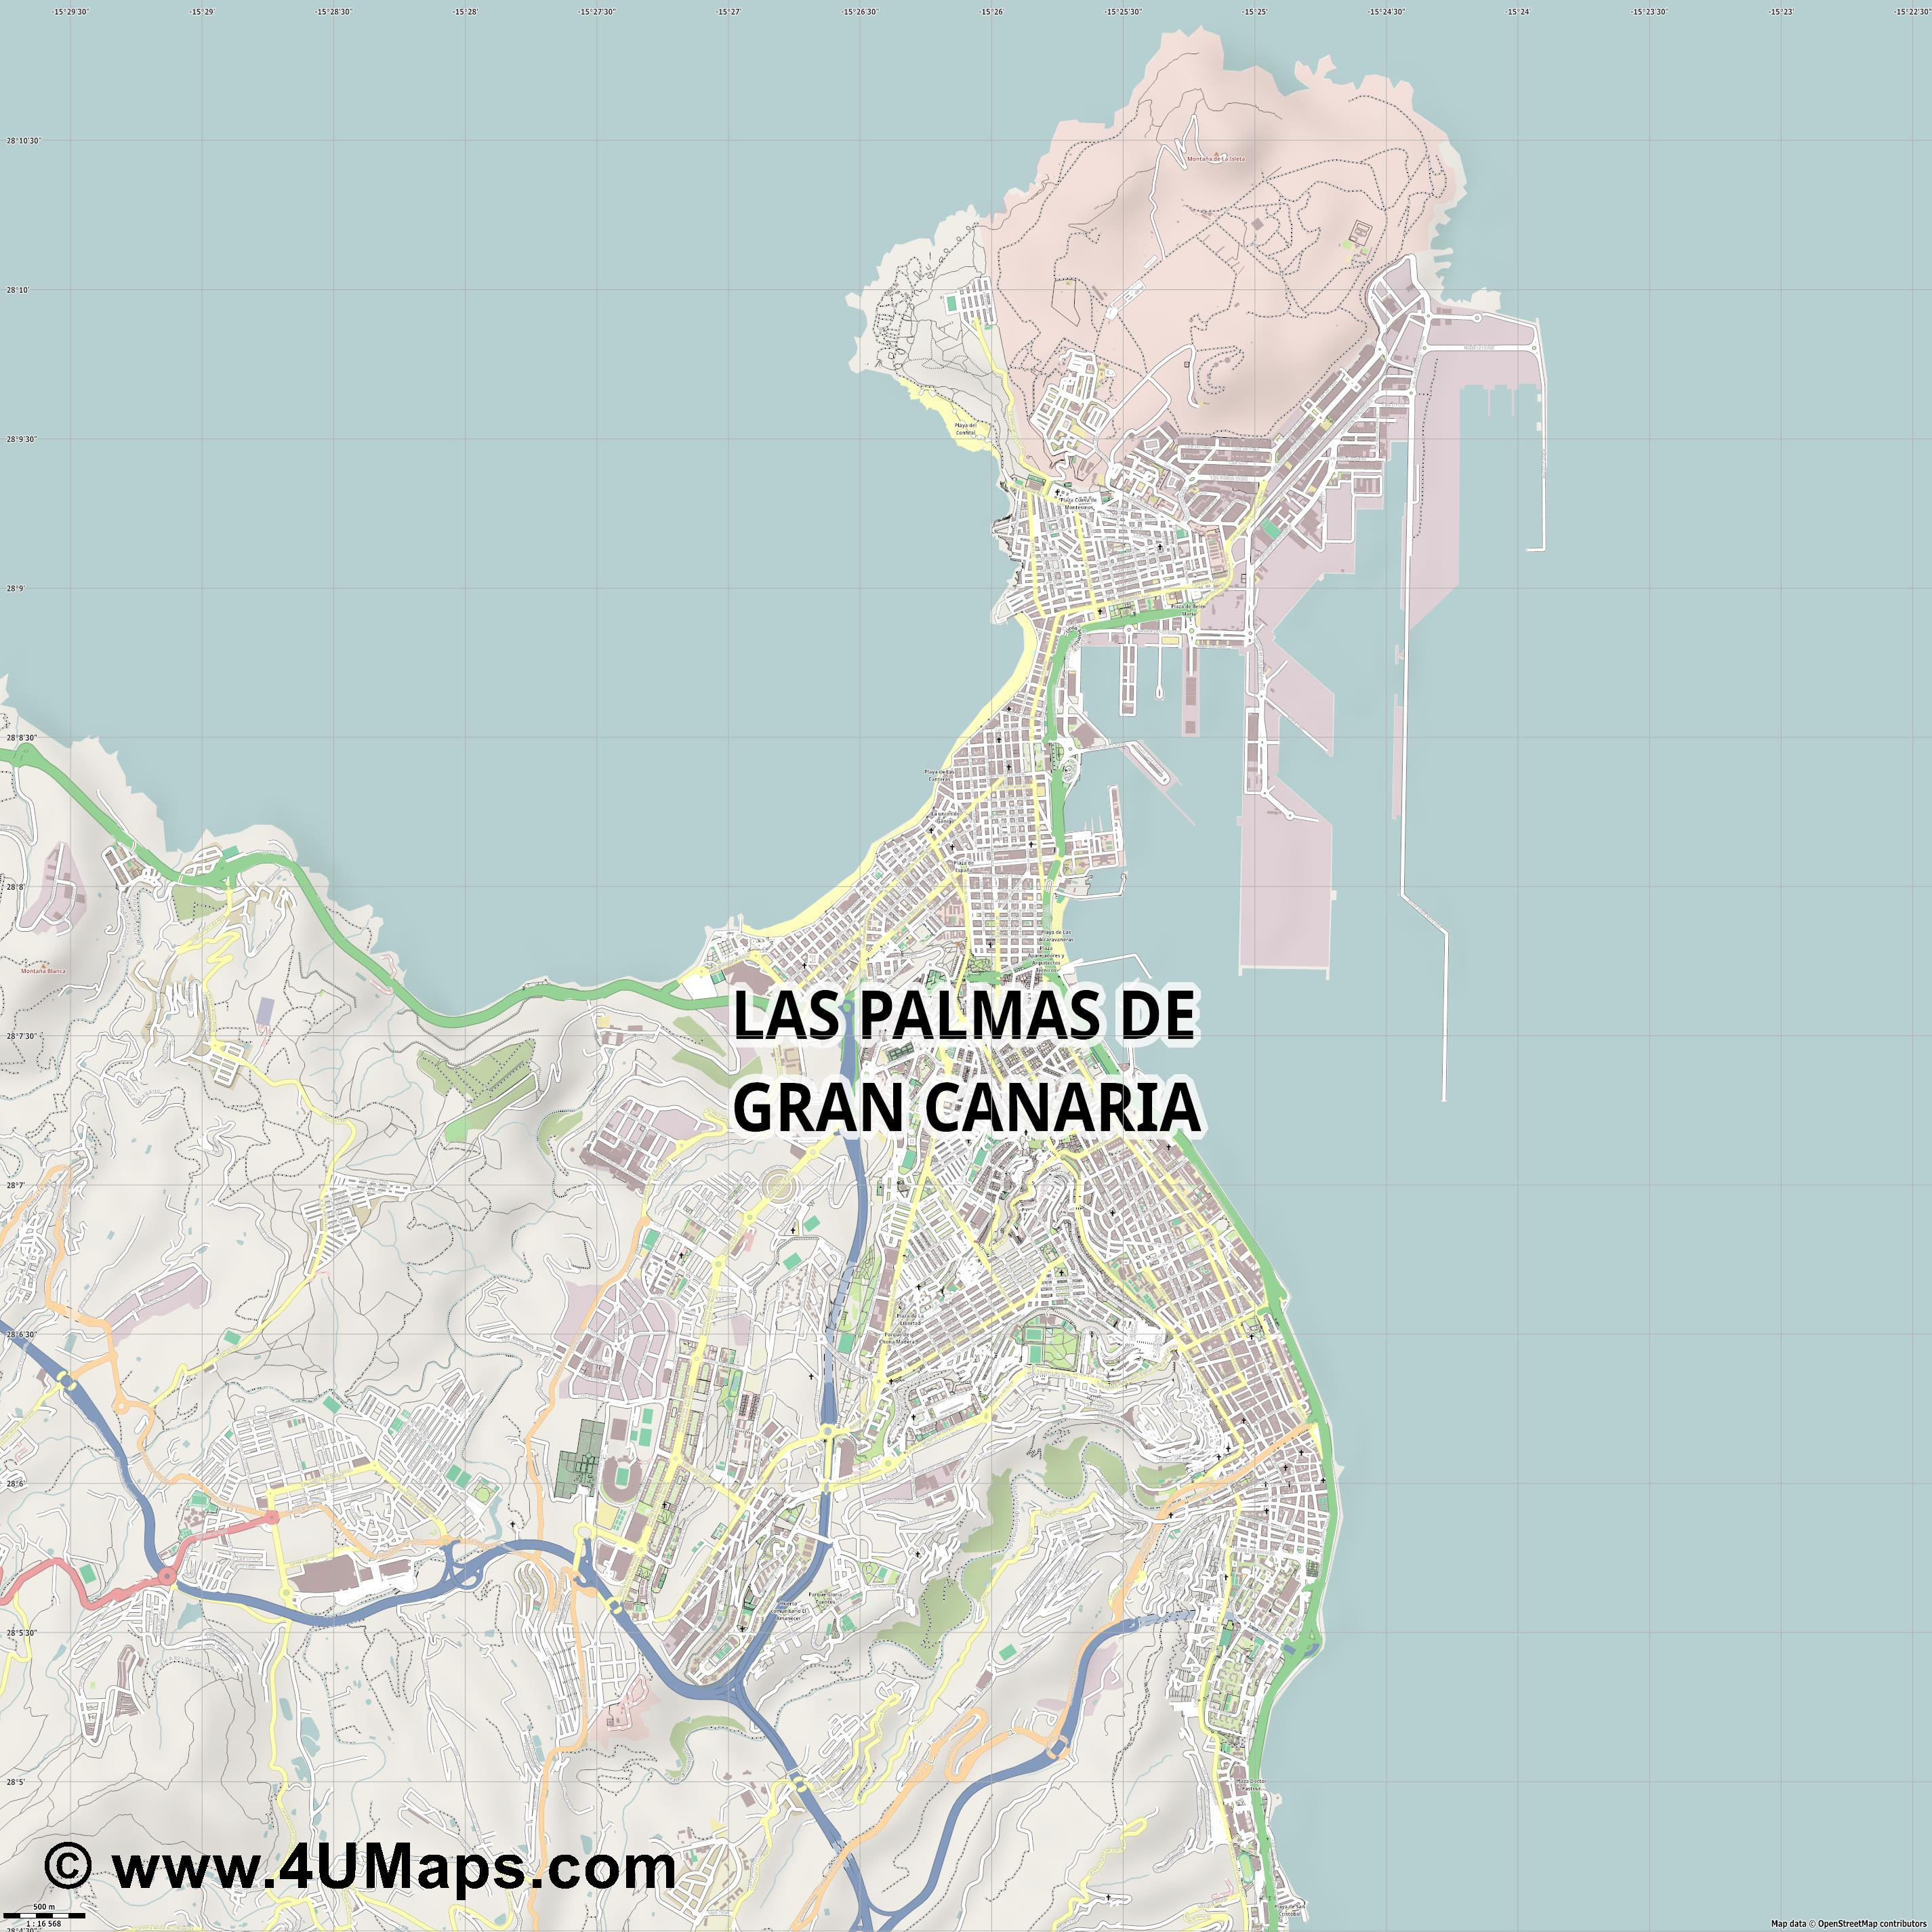 Las Palmas de Gran Canaria  jpg ultra high detail preview vector city map